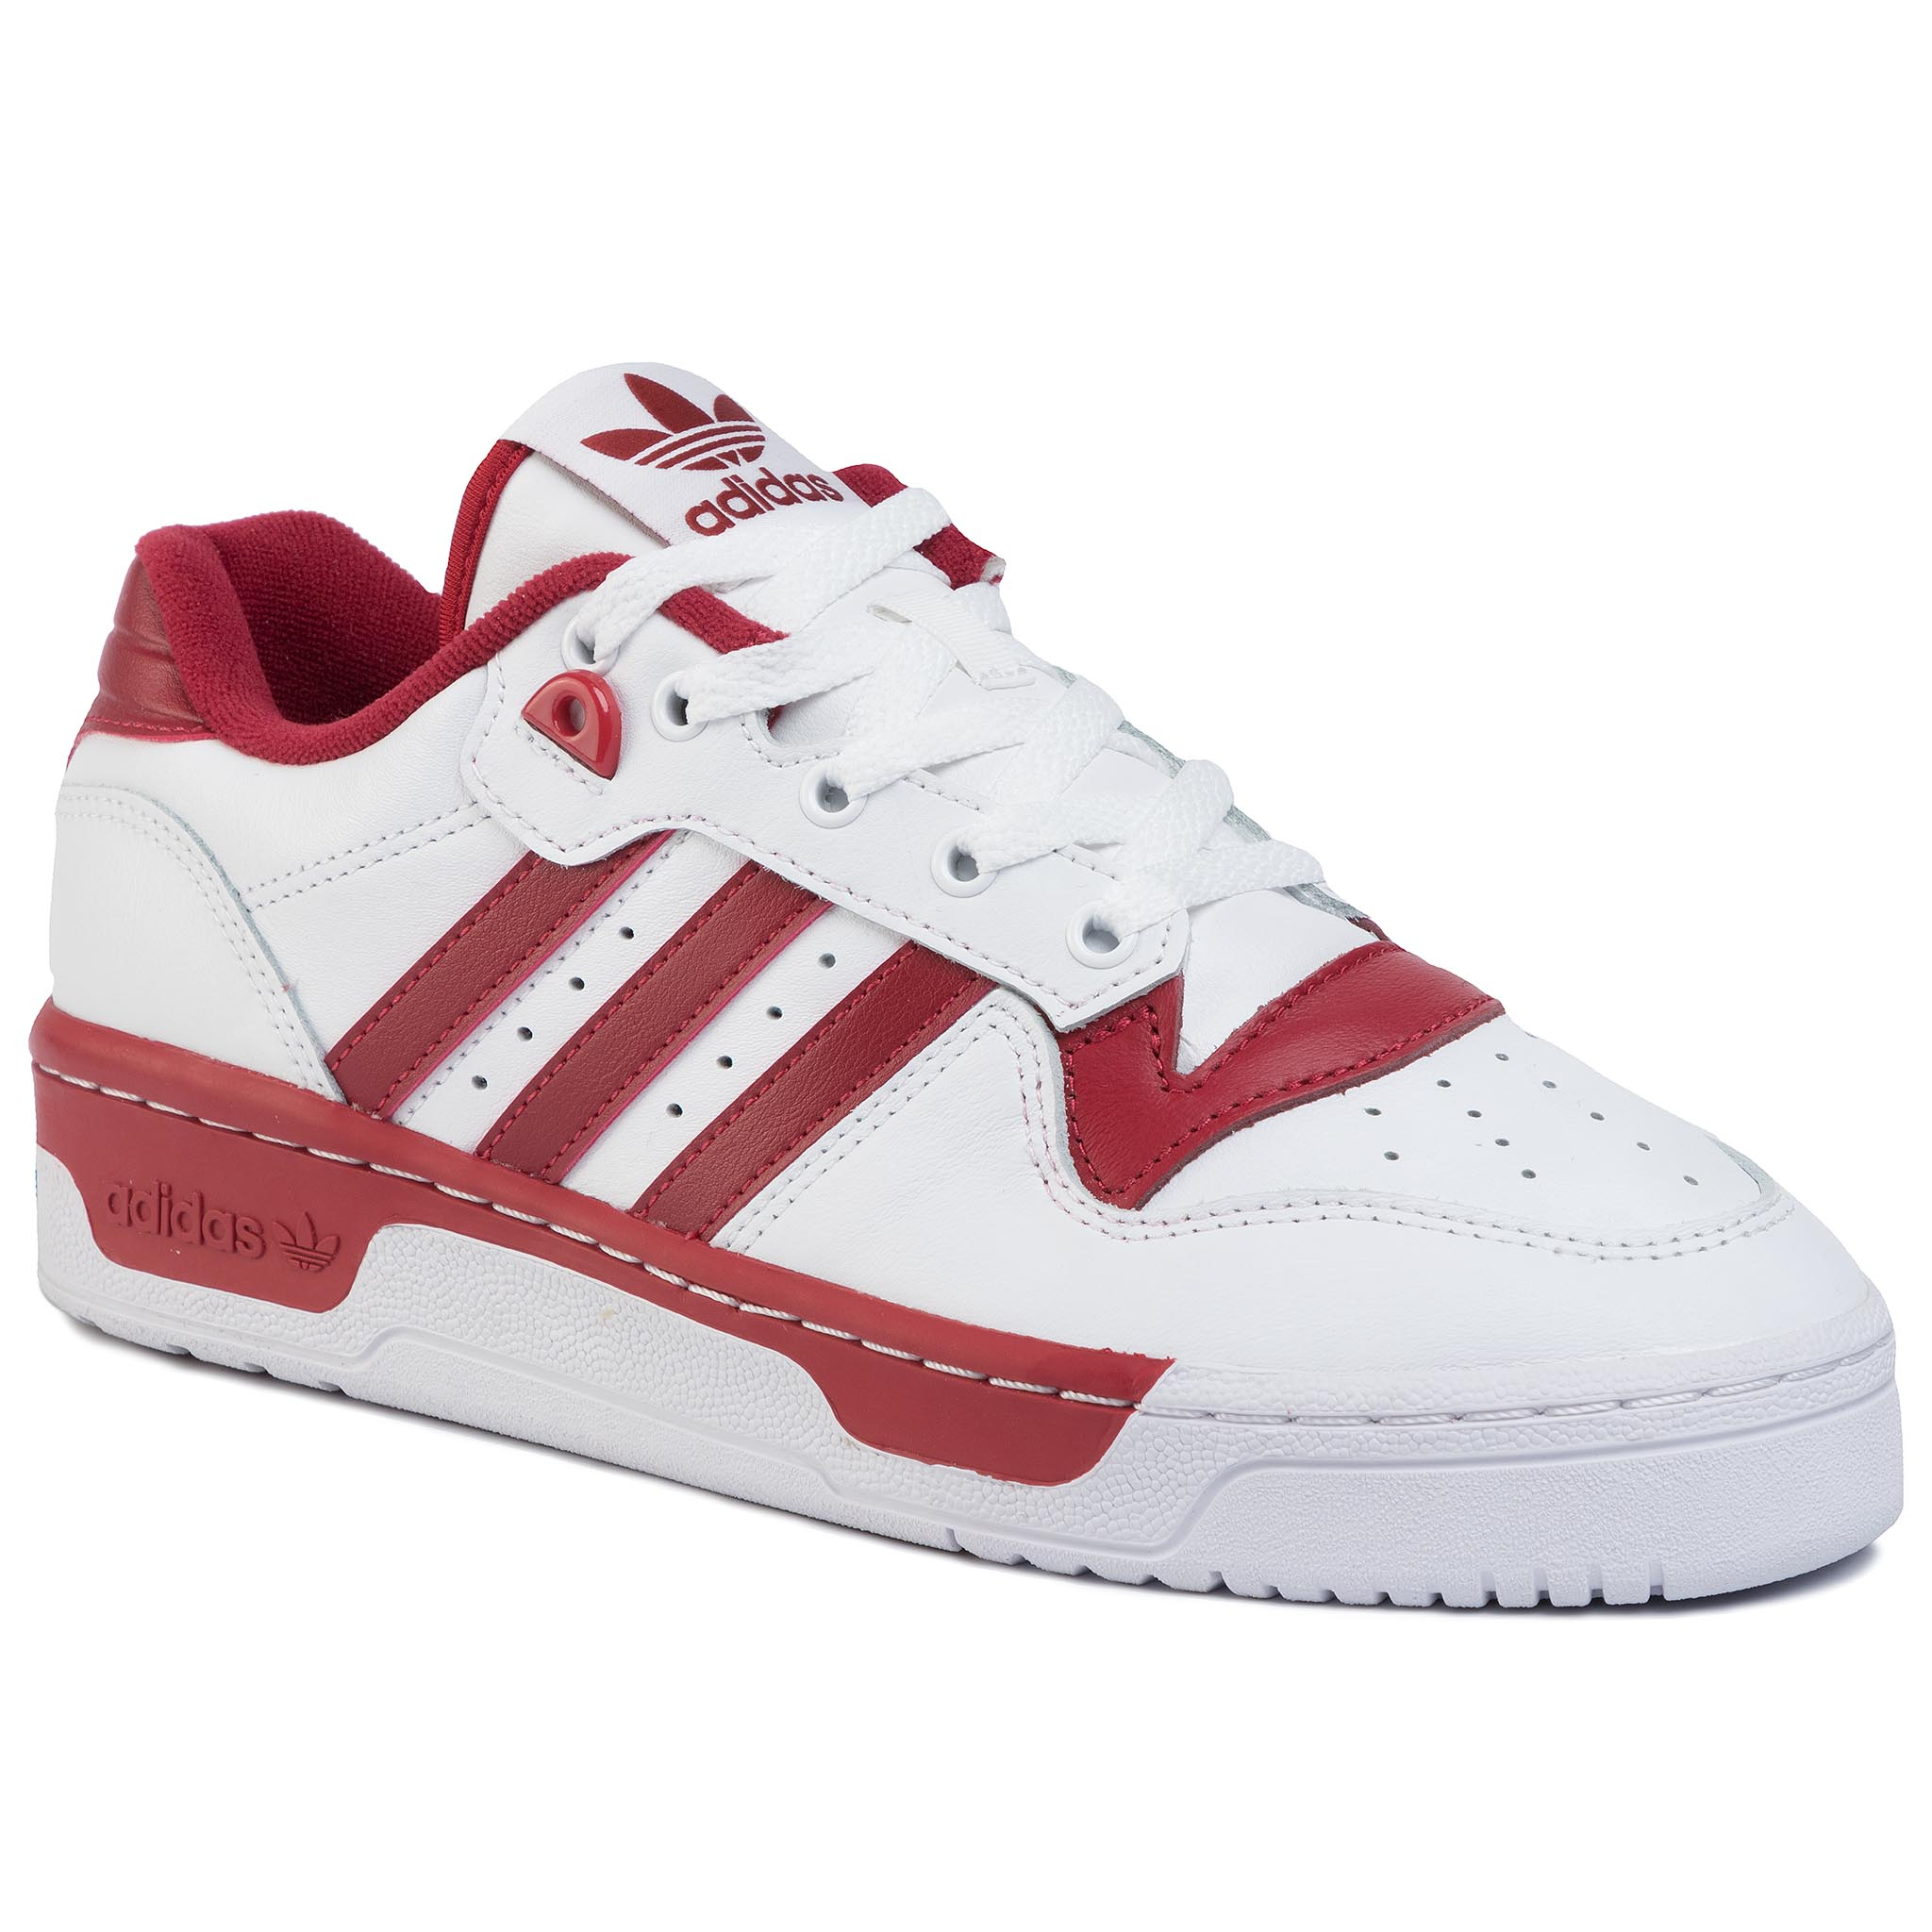 Batai adidas - Rivalry Low EE4967 Ftwwht/Ftwwht/Actmar